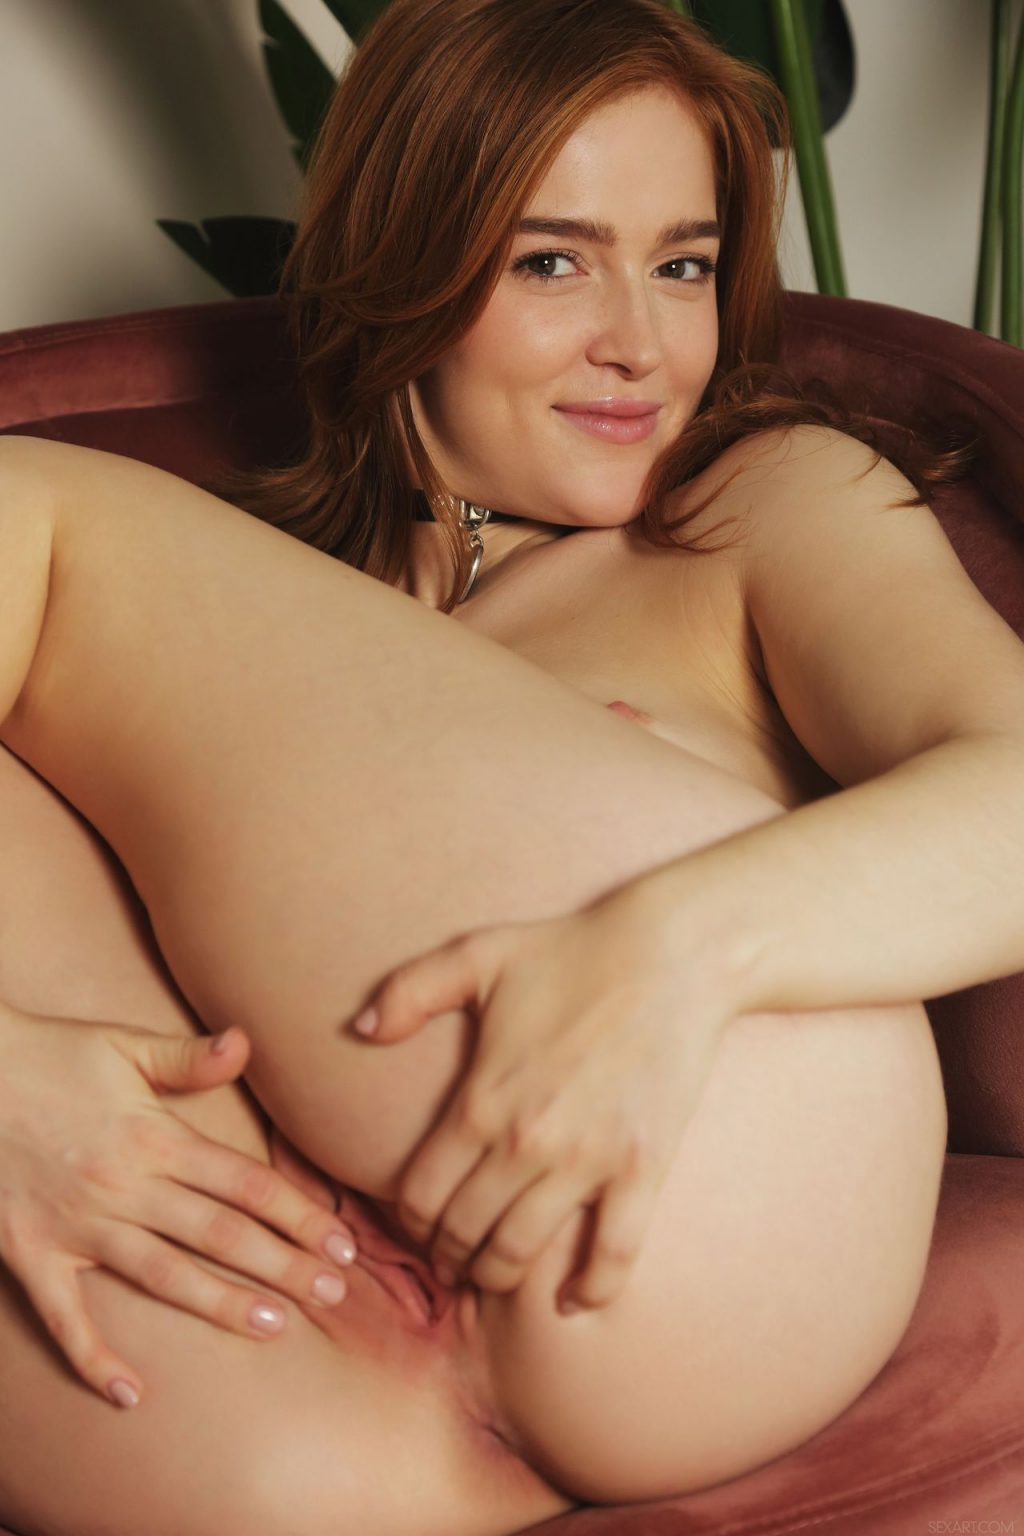 Jia Lissa Nude – In My Heart (122 Photos)